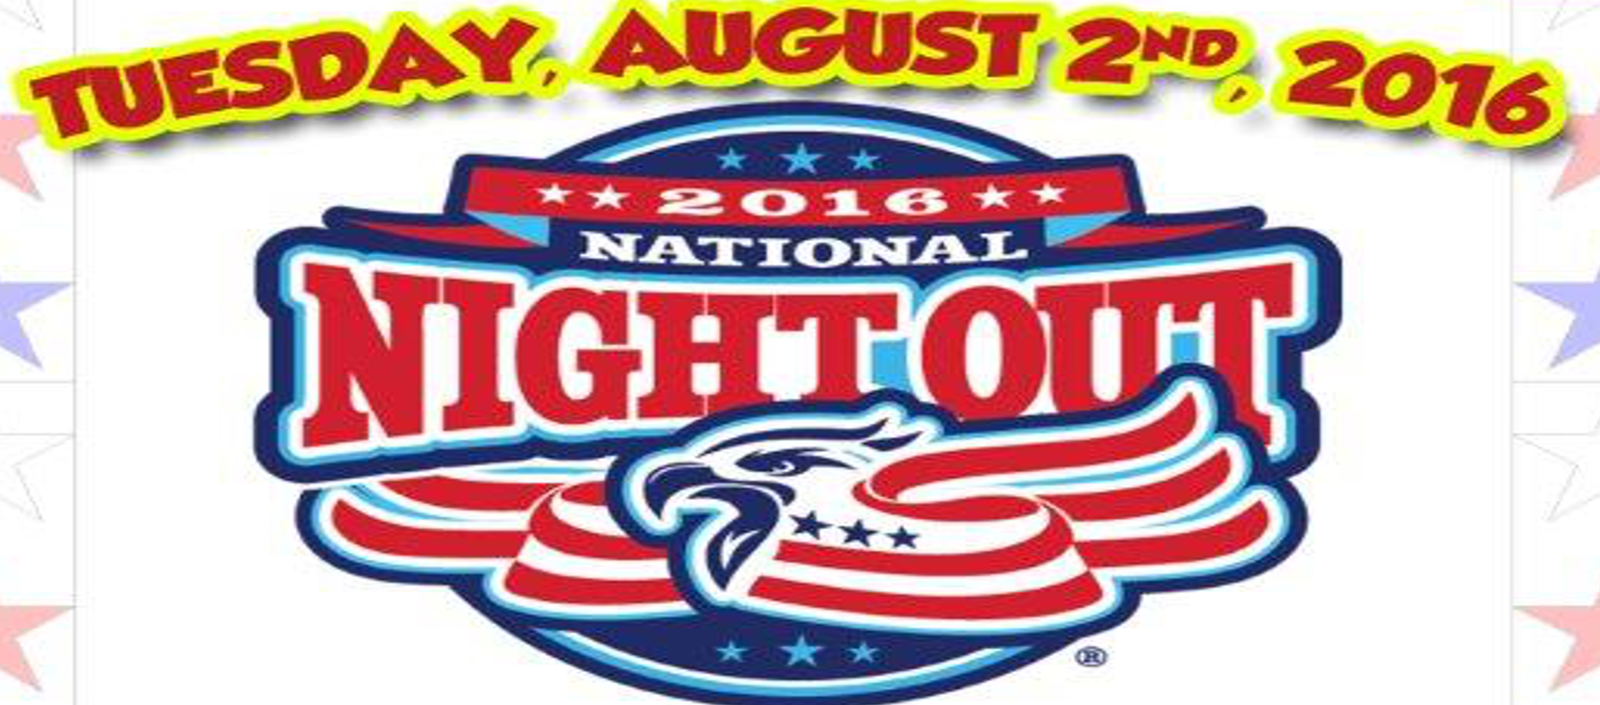 Its's National Night Out